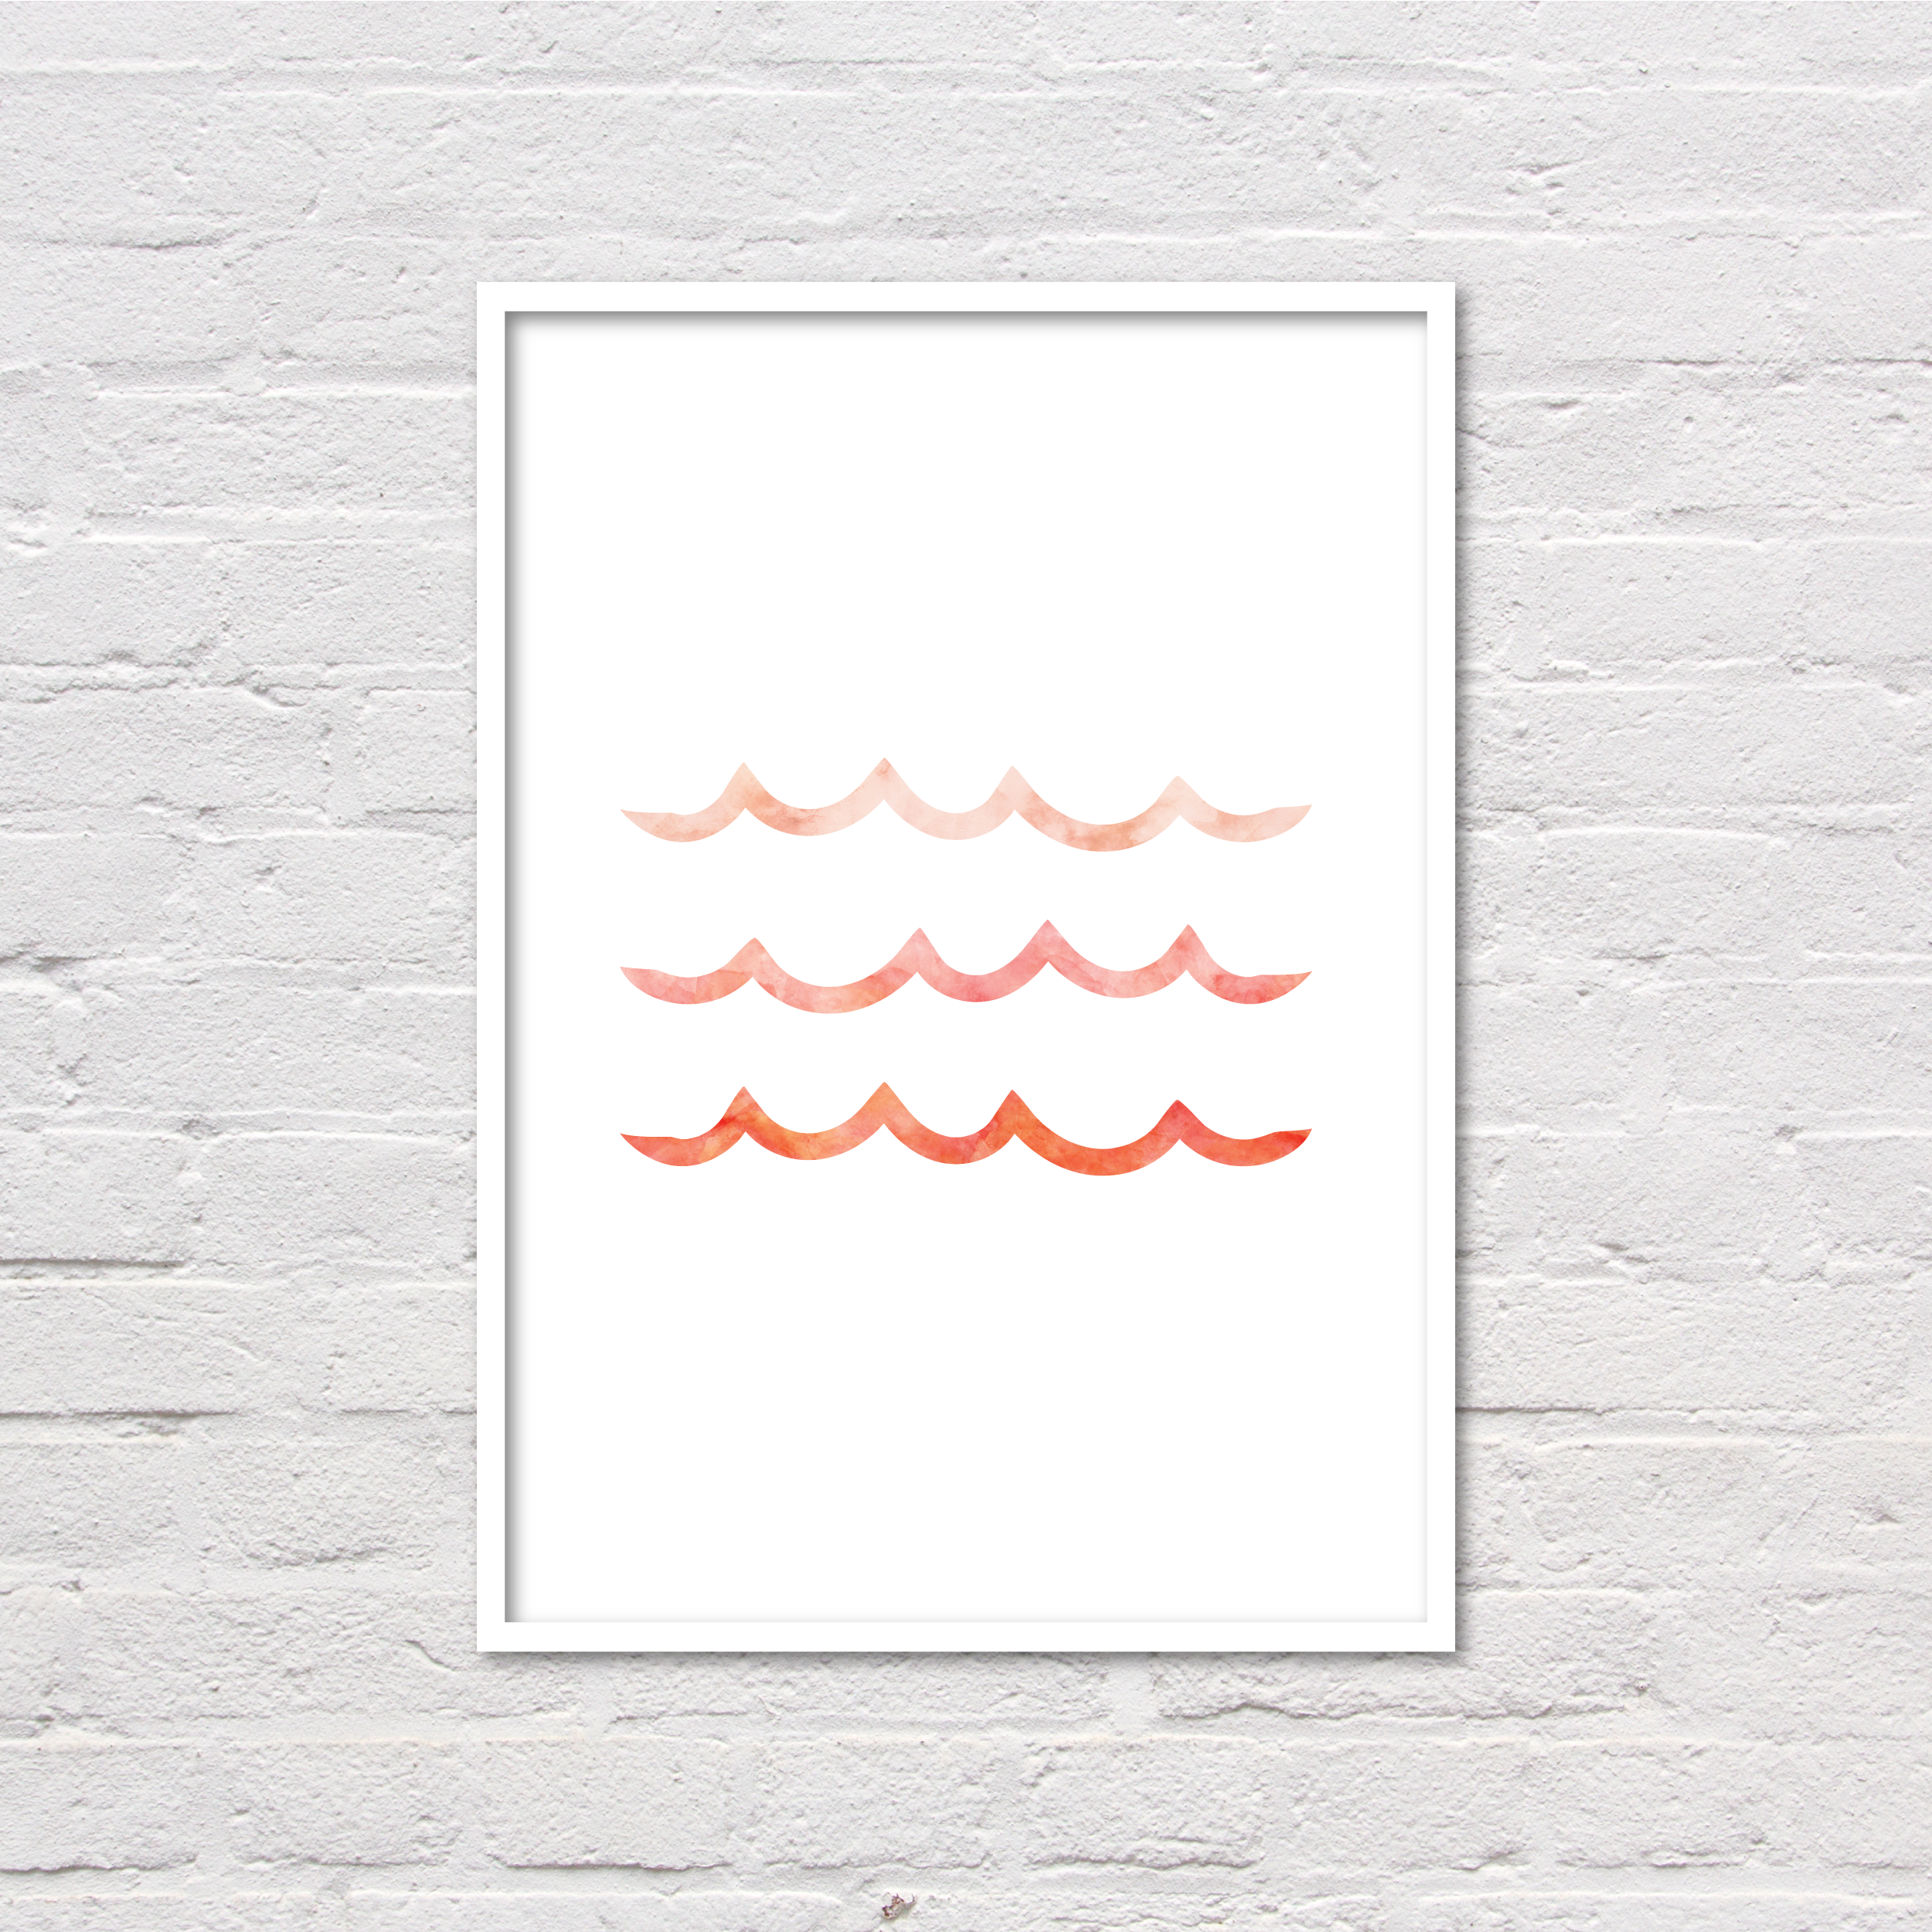 Coral Wave Print, Girl Nursery Art, Ocean Printable, Waves Print, Modern Coral Wall Art, Coastal Chic Art, Coral Prints, Digital Prints